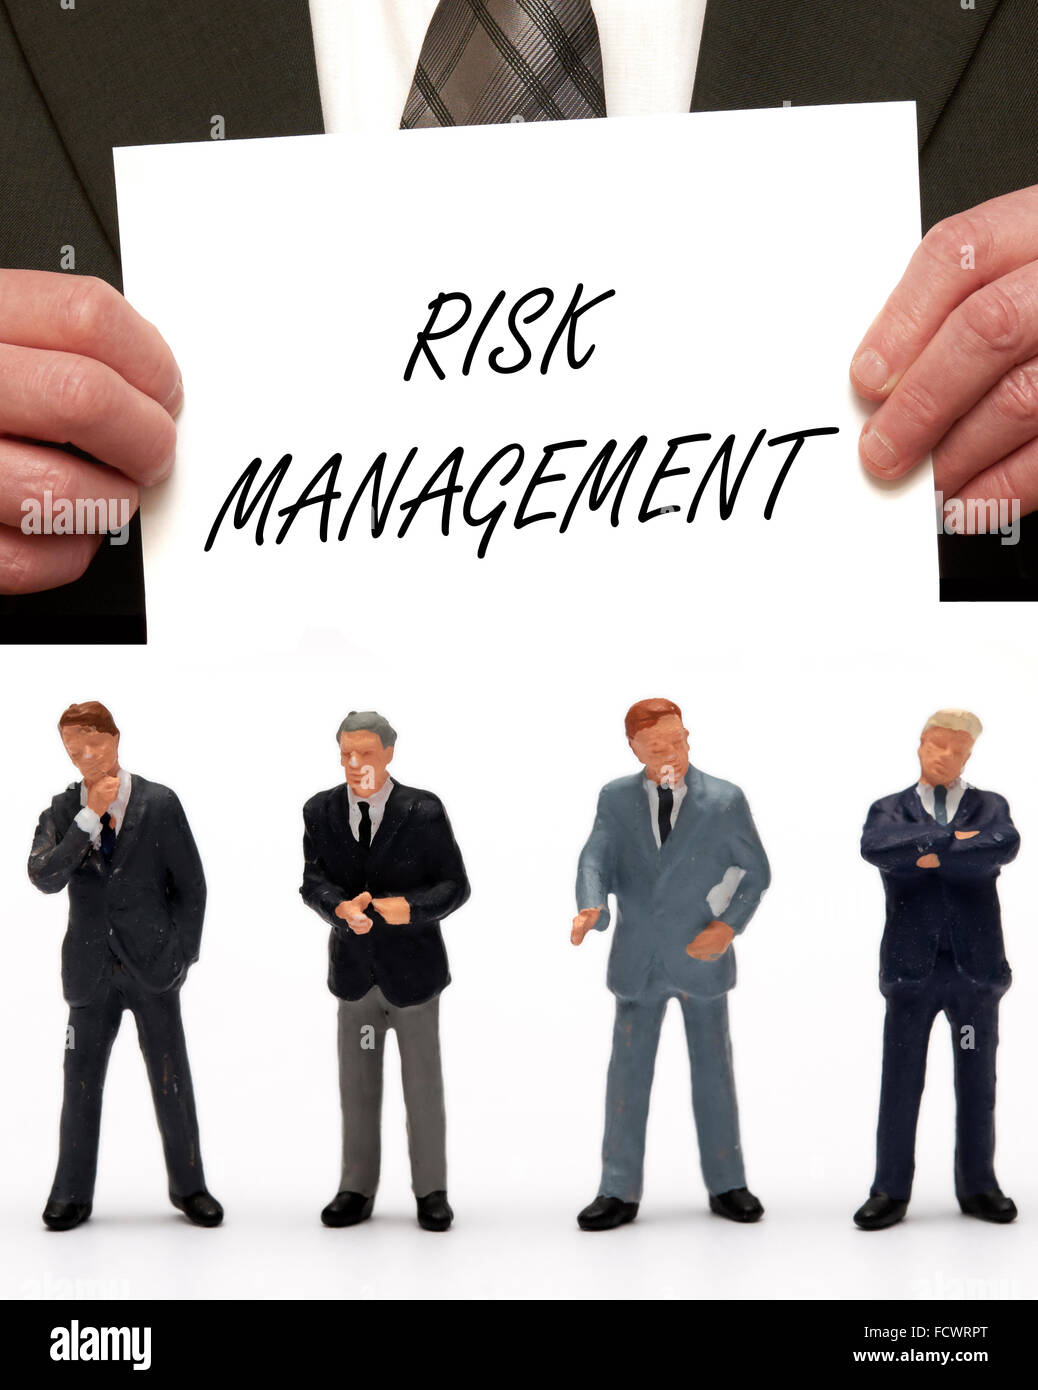 Miniature figurine Business men dressed in suits under the message 'Risk management ' on a card being held - Stock Image